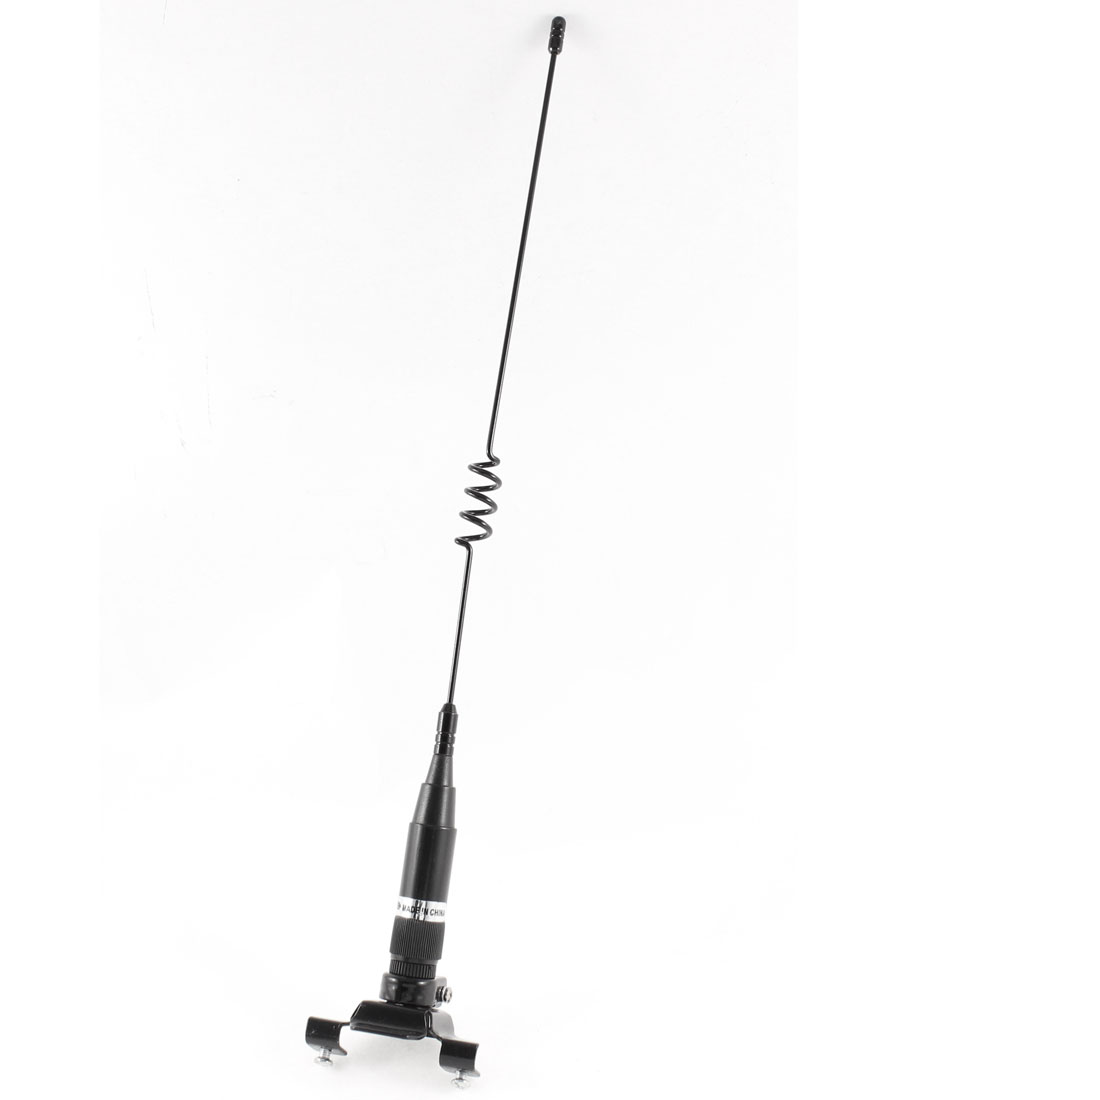 Black Metal Screw Mounting Auto Car Radio FM AM Aid Antenna 40.5cm Length